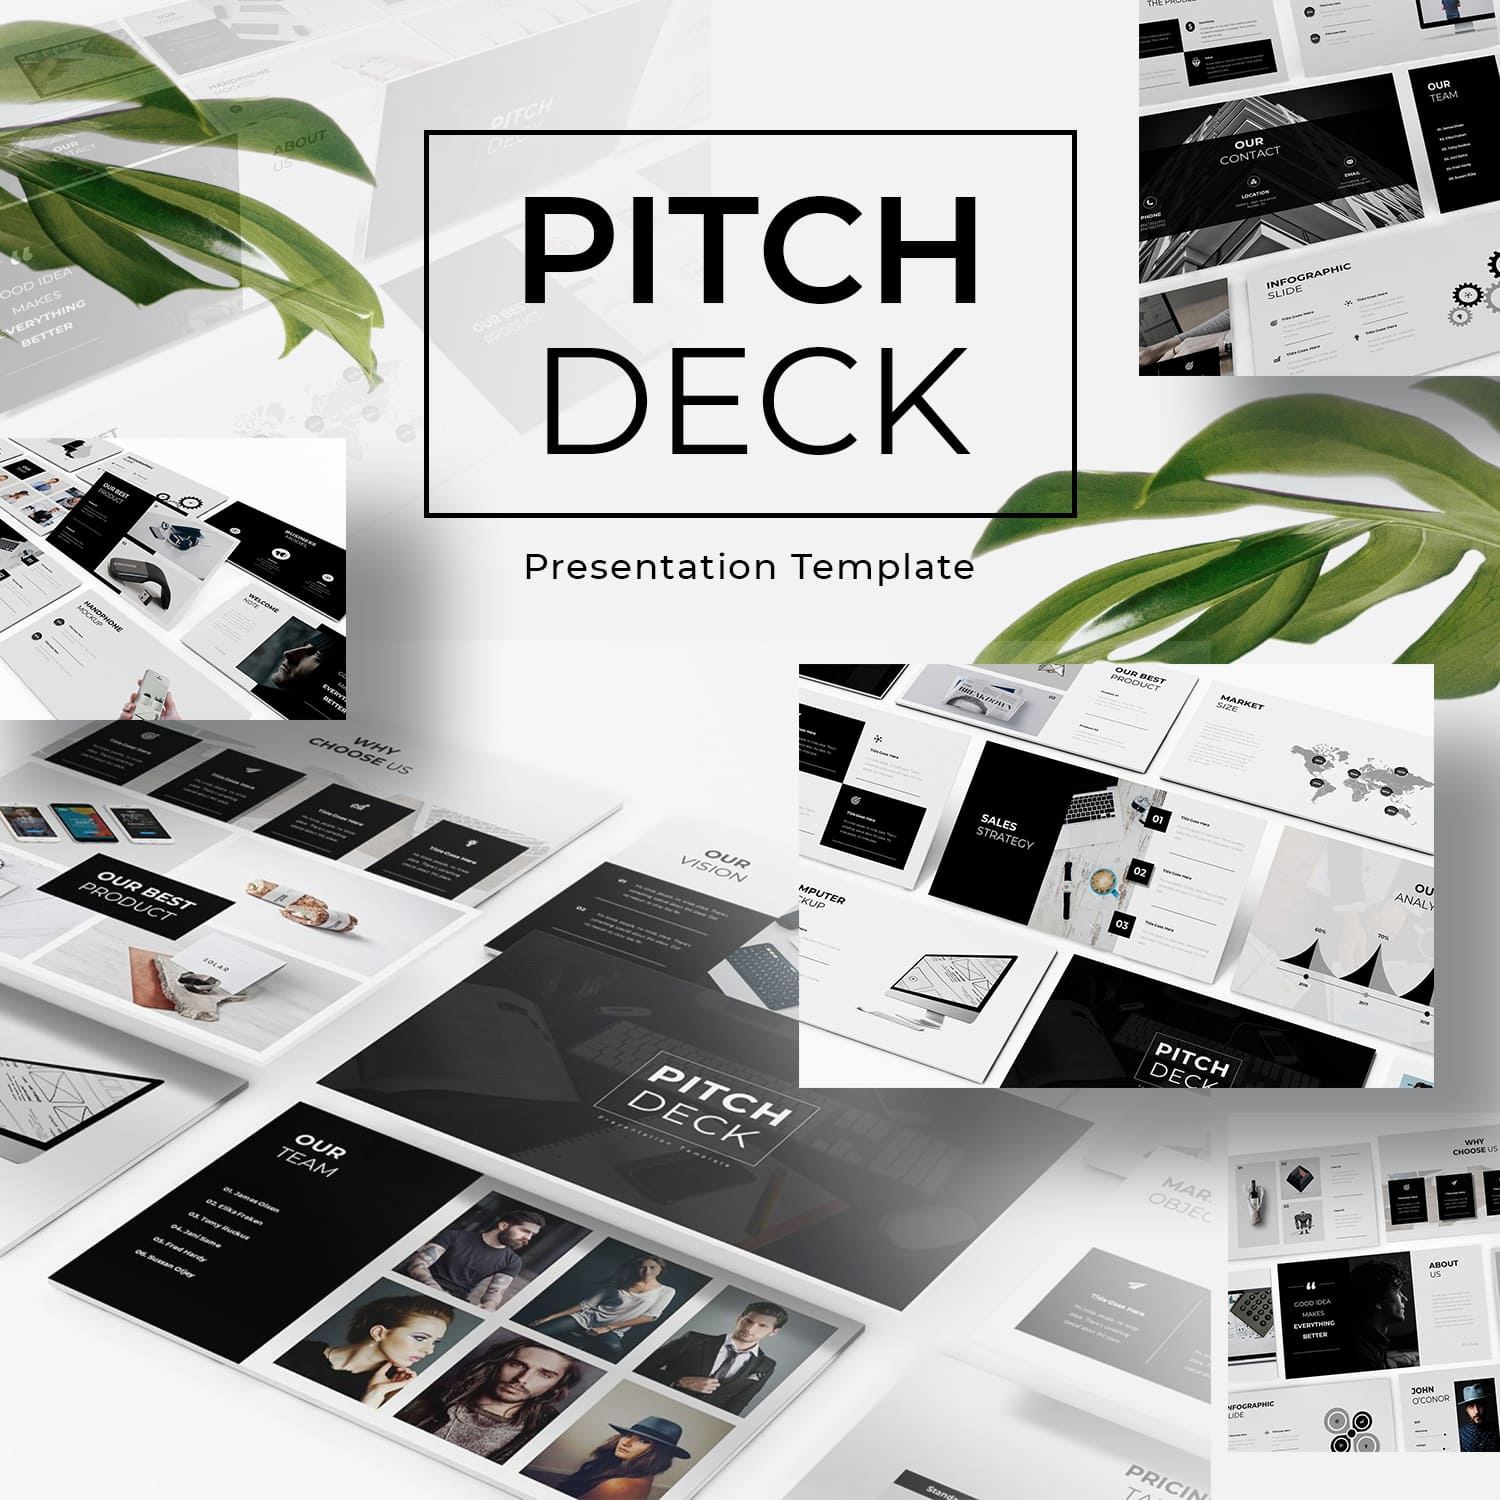 Pitch Deck Powerpoint Template by MasterBundles.